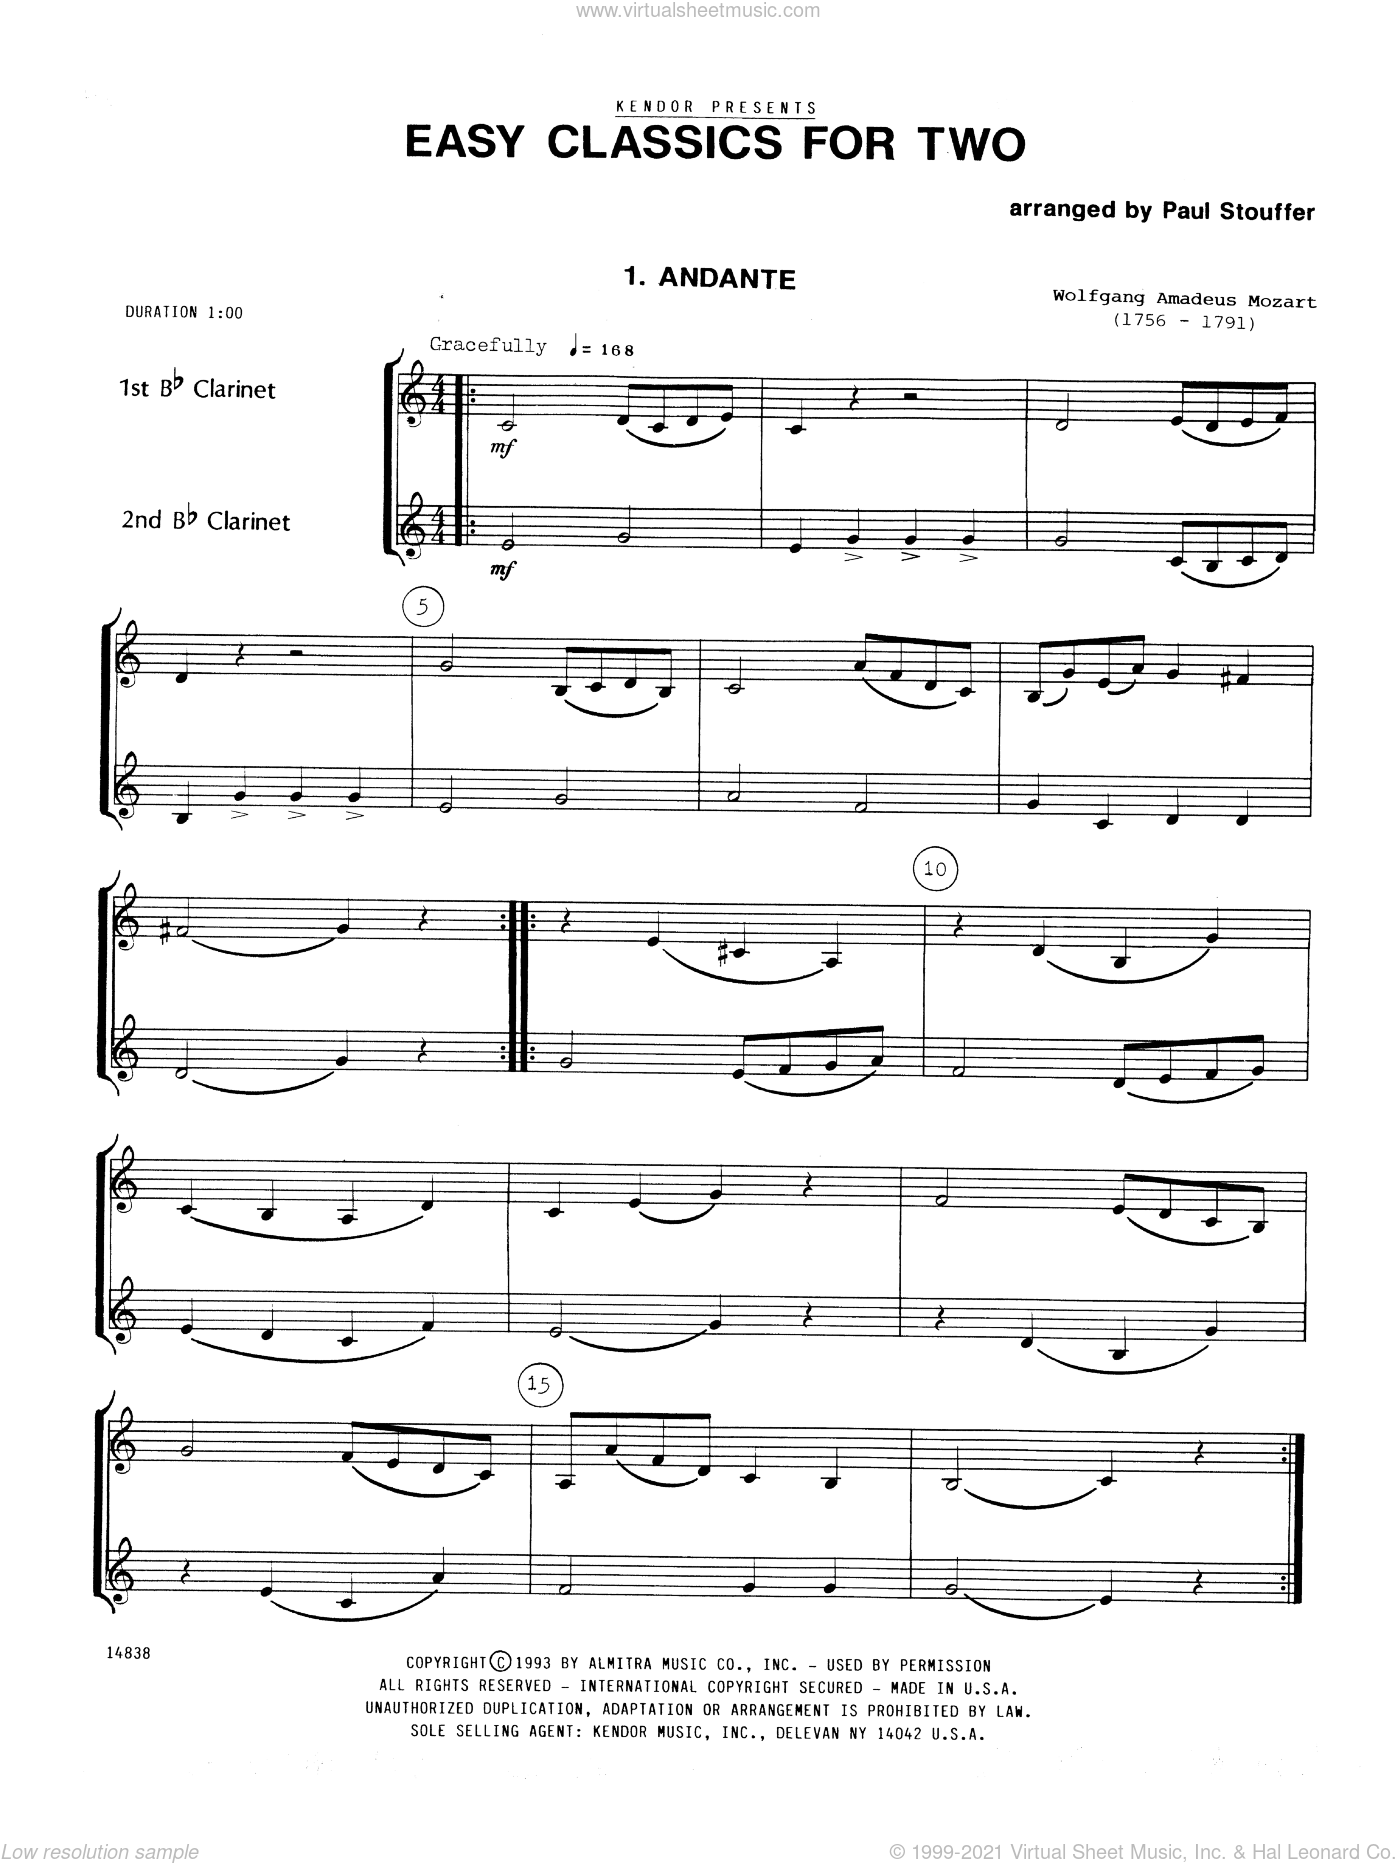 Easy Classics For Two sheet music for two clarinets by Stouffer